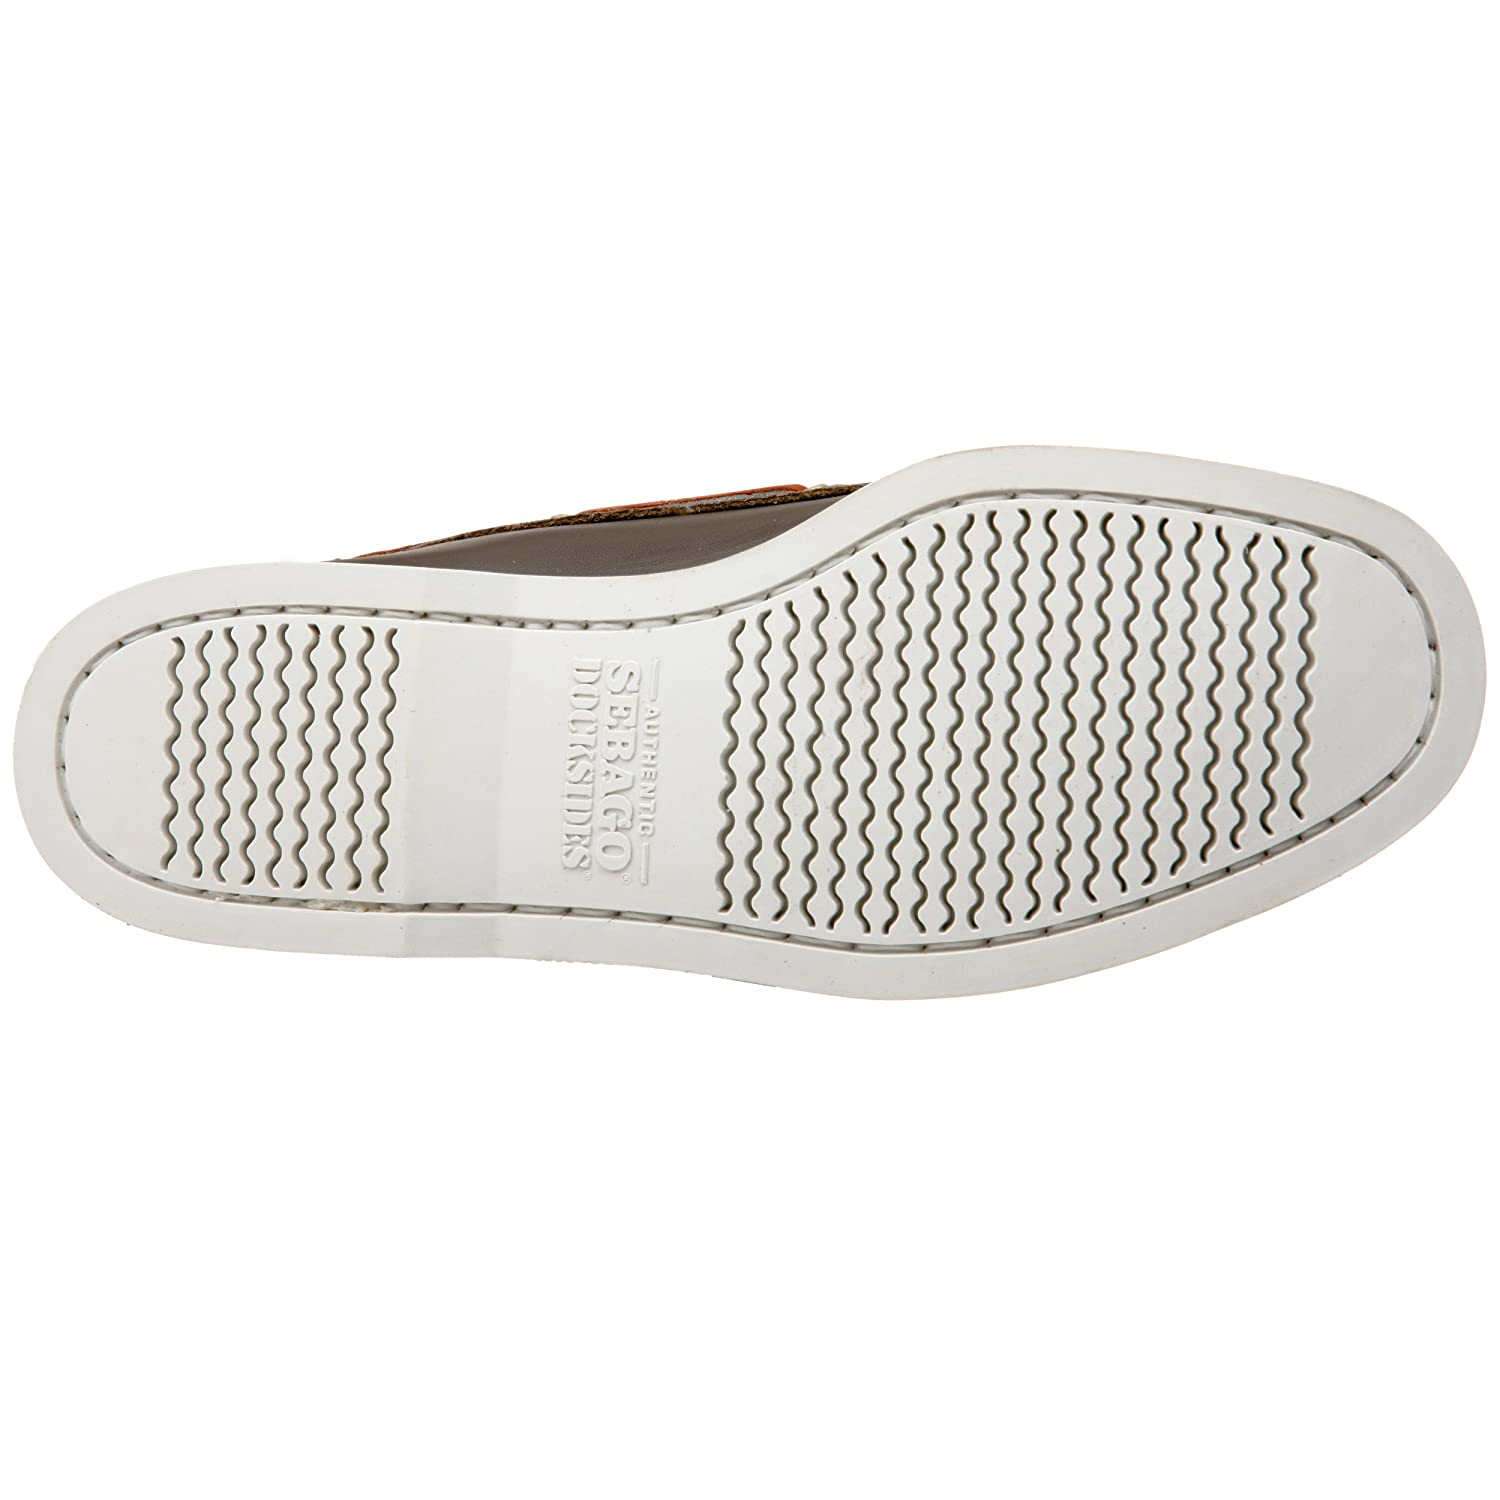 Comfort Shoes Used By Scientific Process Trend Mark Sperry White Shoes Size 7